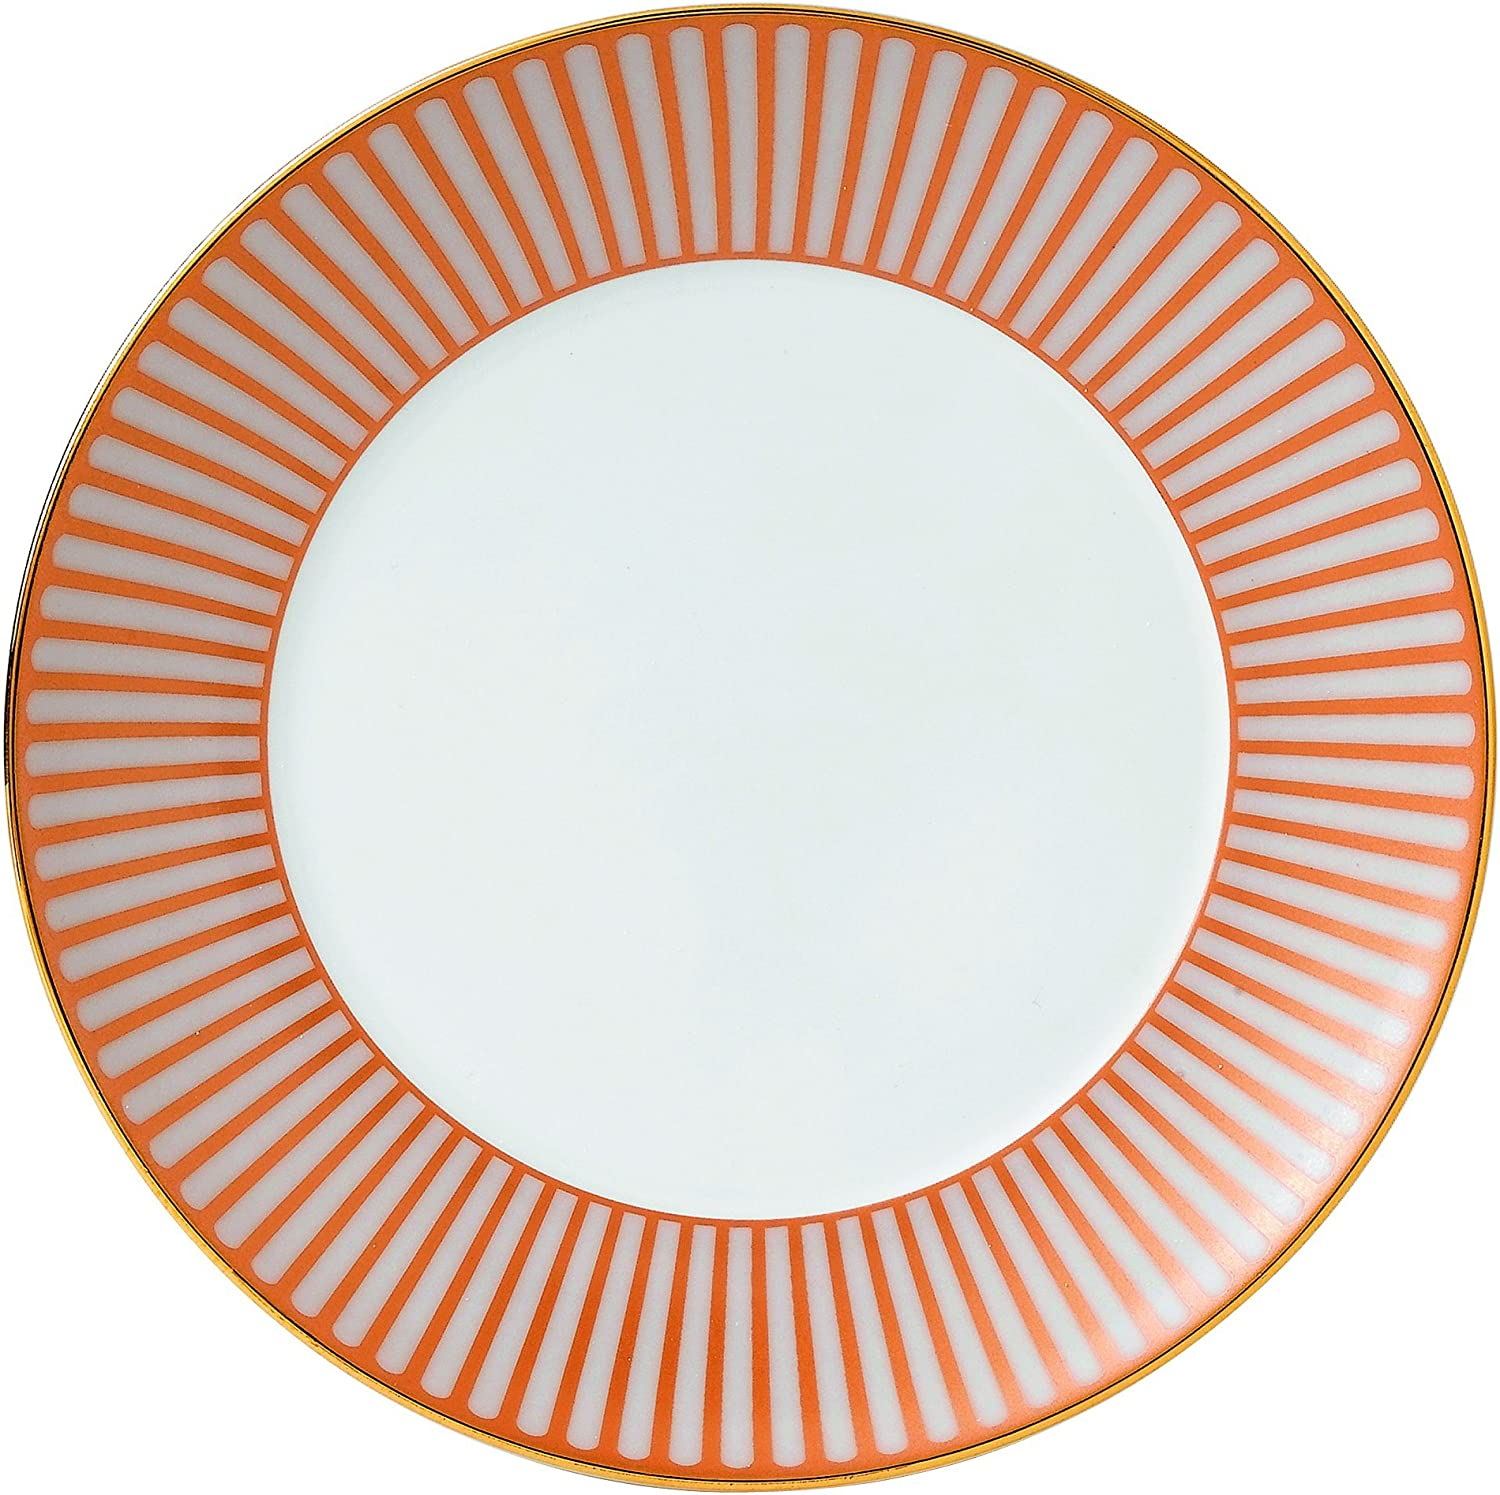 Cheap SALE Start Wedgwood Palladian Trust Bread and Butter Plate Multicolor 6.5